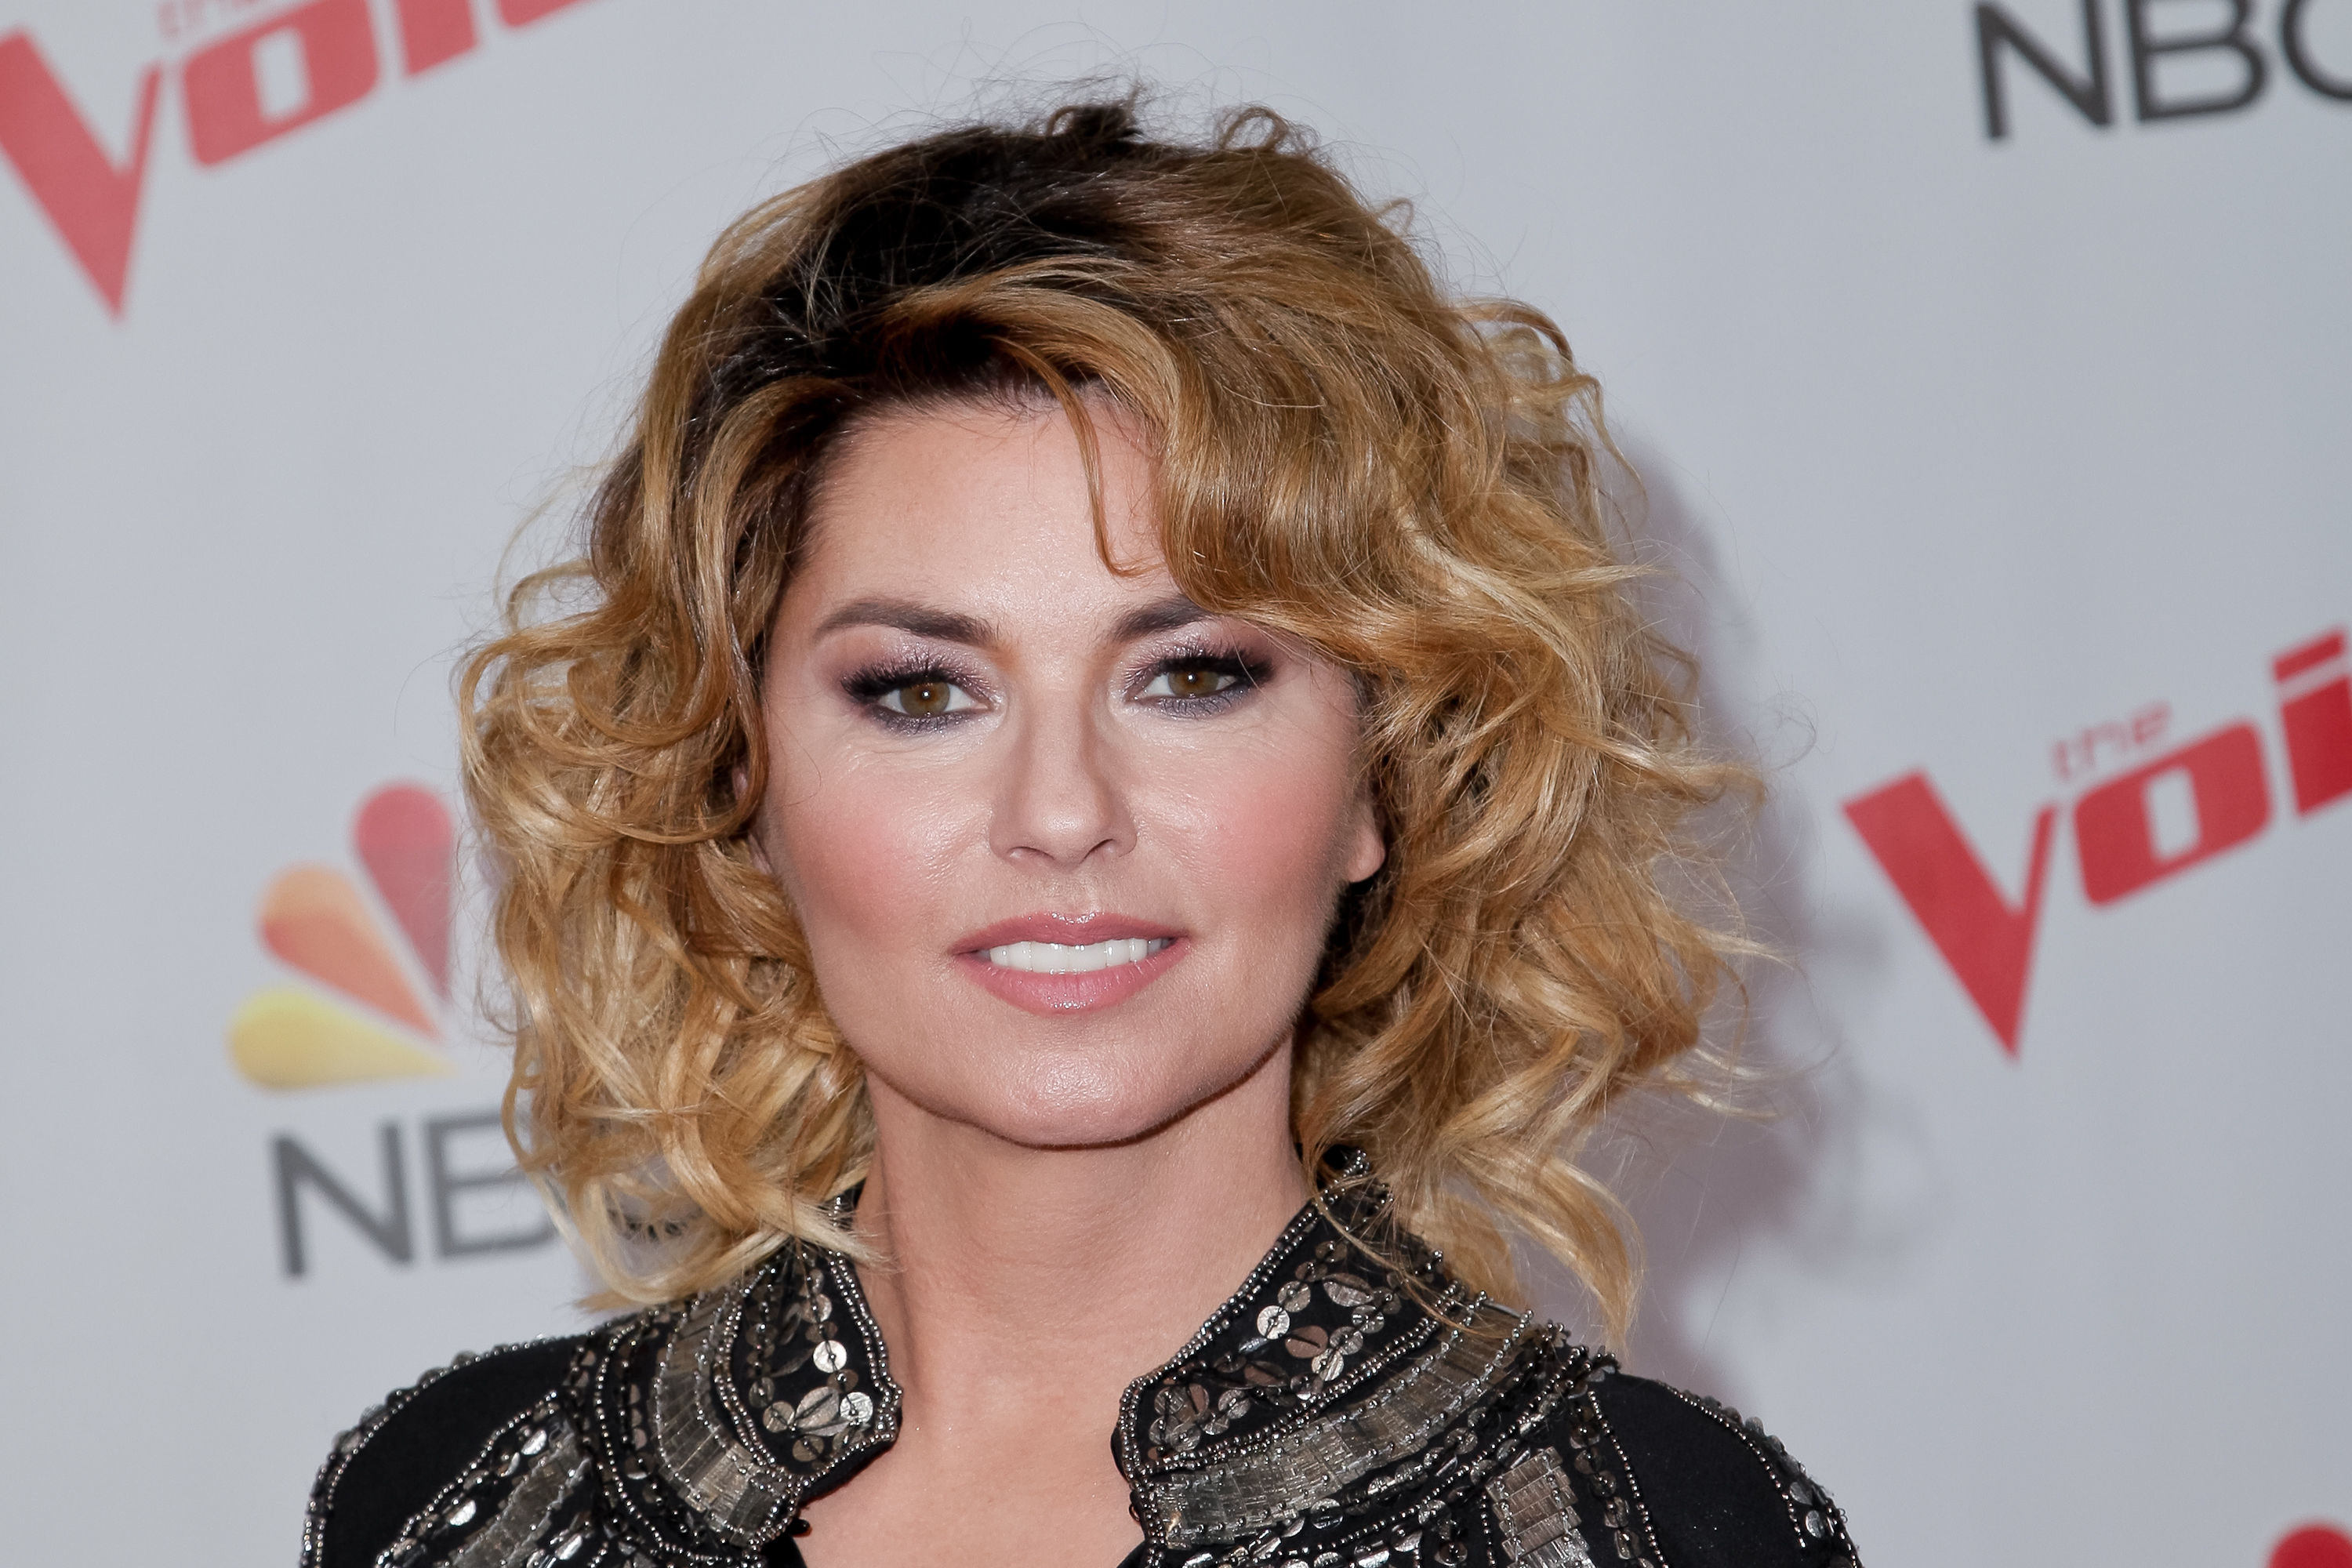 Shania Twain To Release New Music for the First Time in 15 Years!